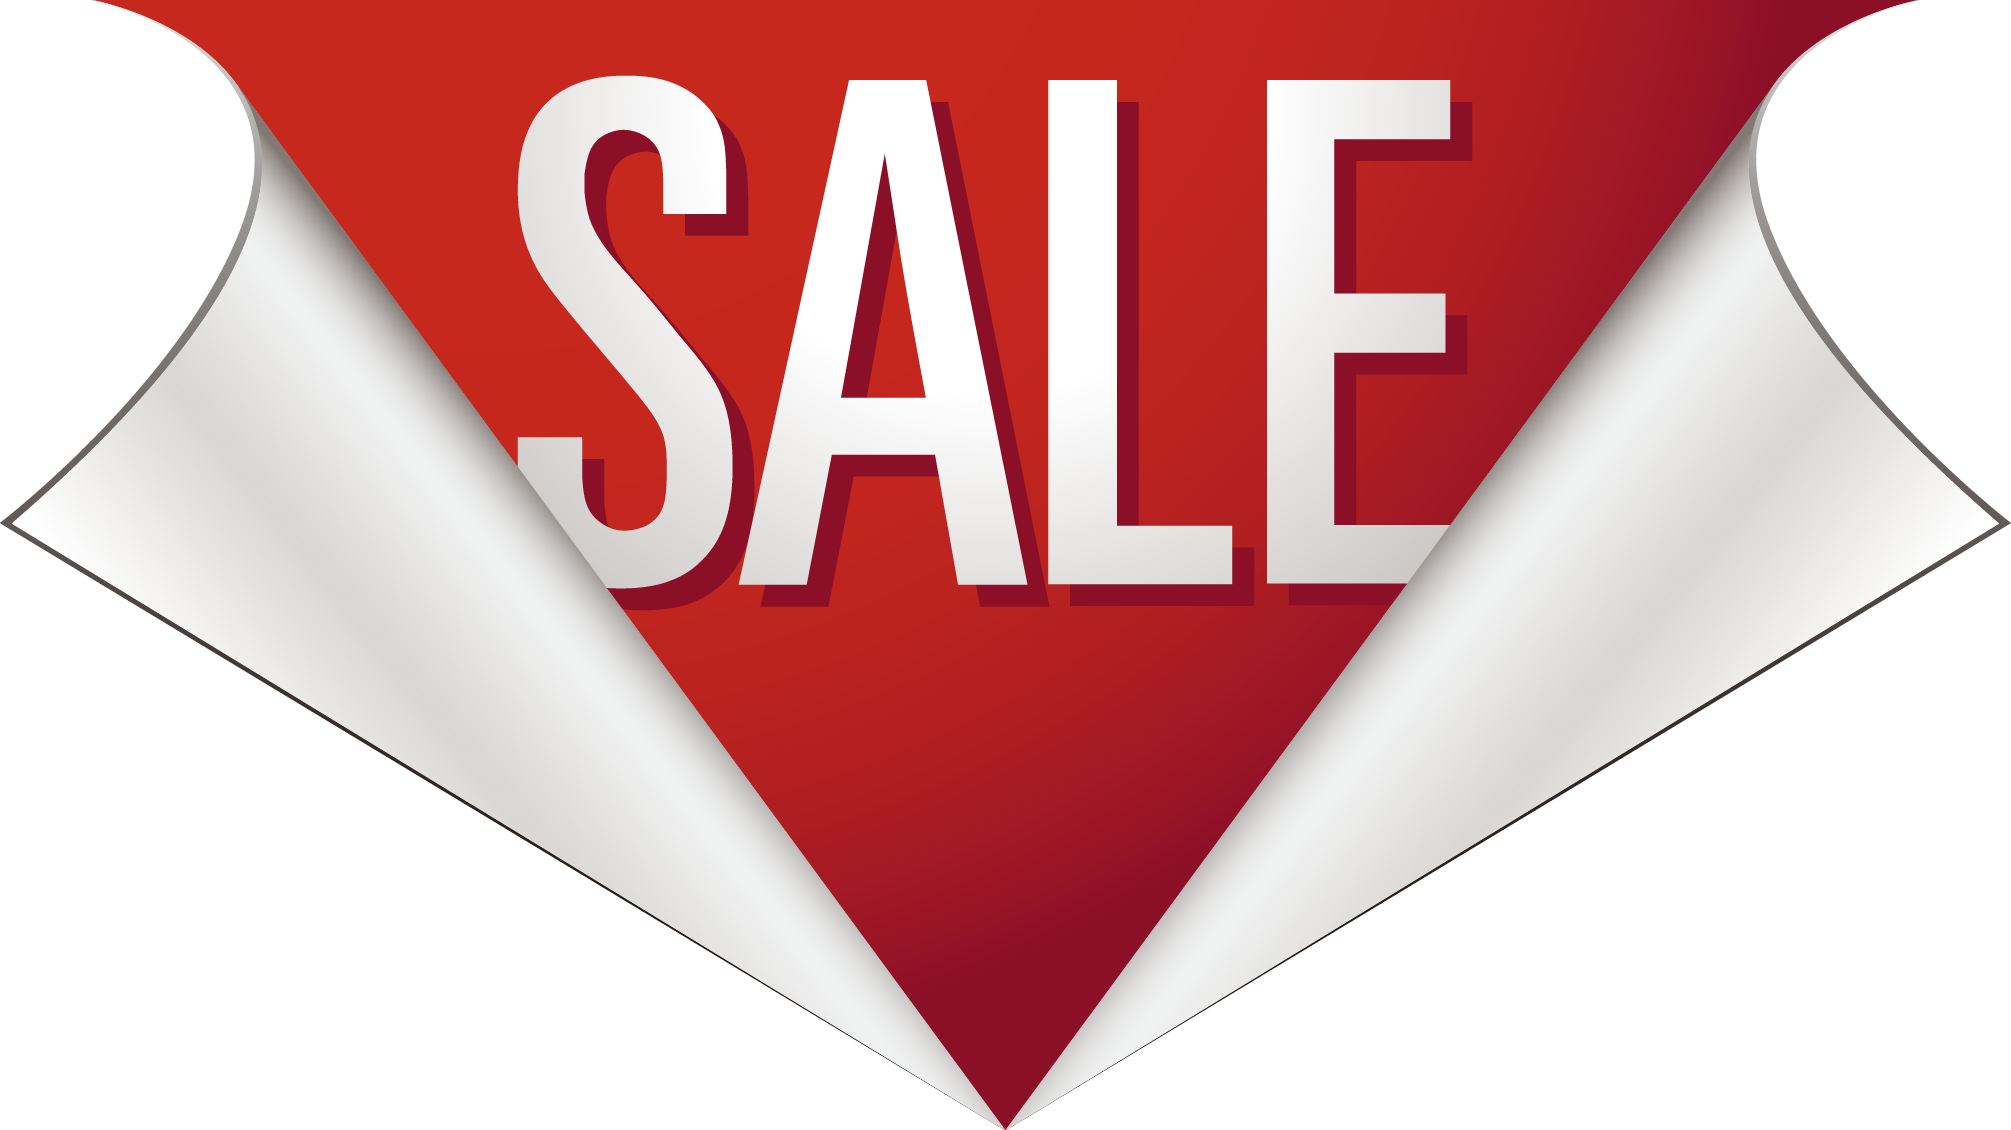 And Discount Tear Price Sales Sale Discounts PNG Image